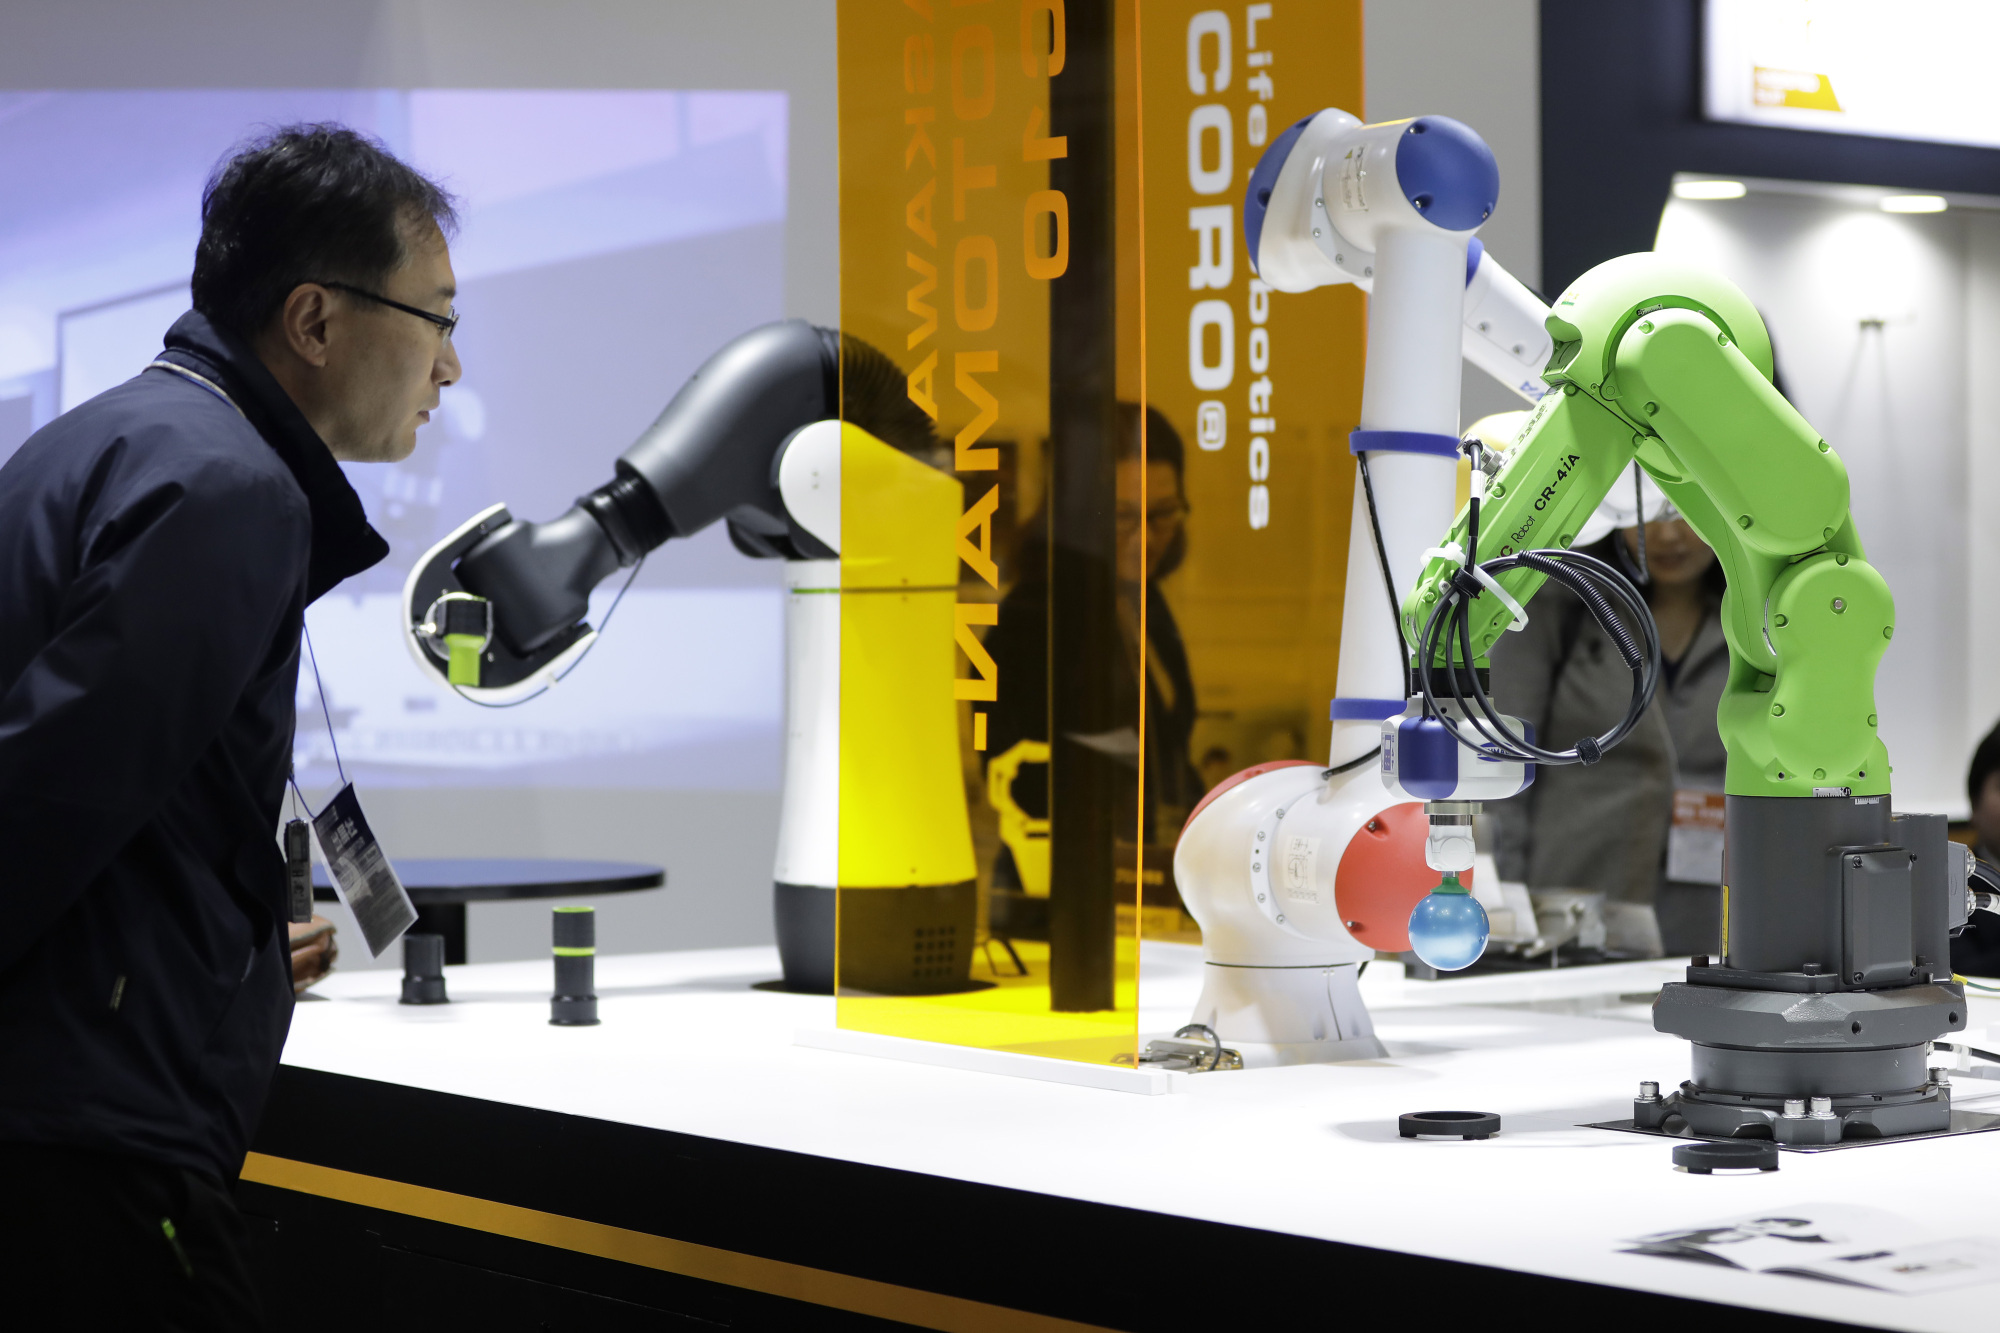 An attendee looks at a Fanuc Corp. CR-4iA industrial robot (right) at the RoboDEX exhibition in Tokyo on Jan. 18. | BLOOMBERG